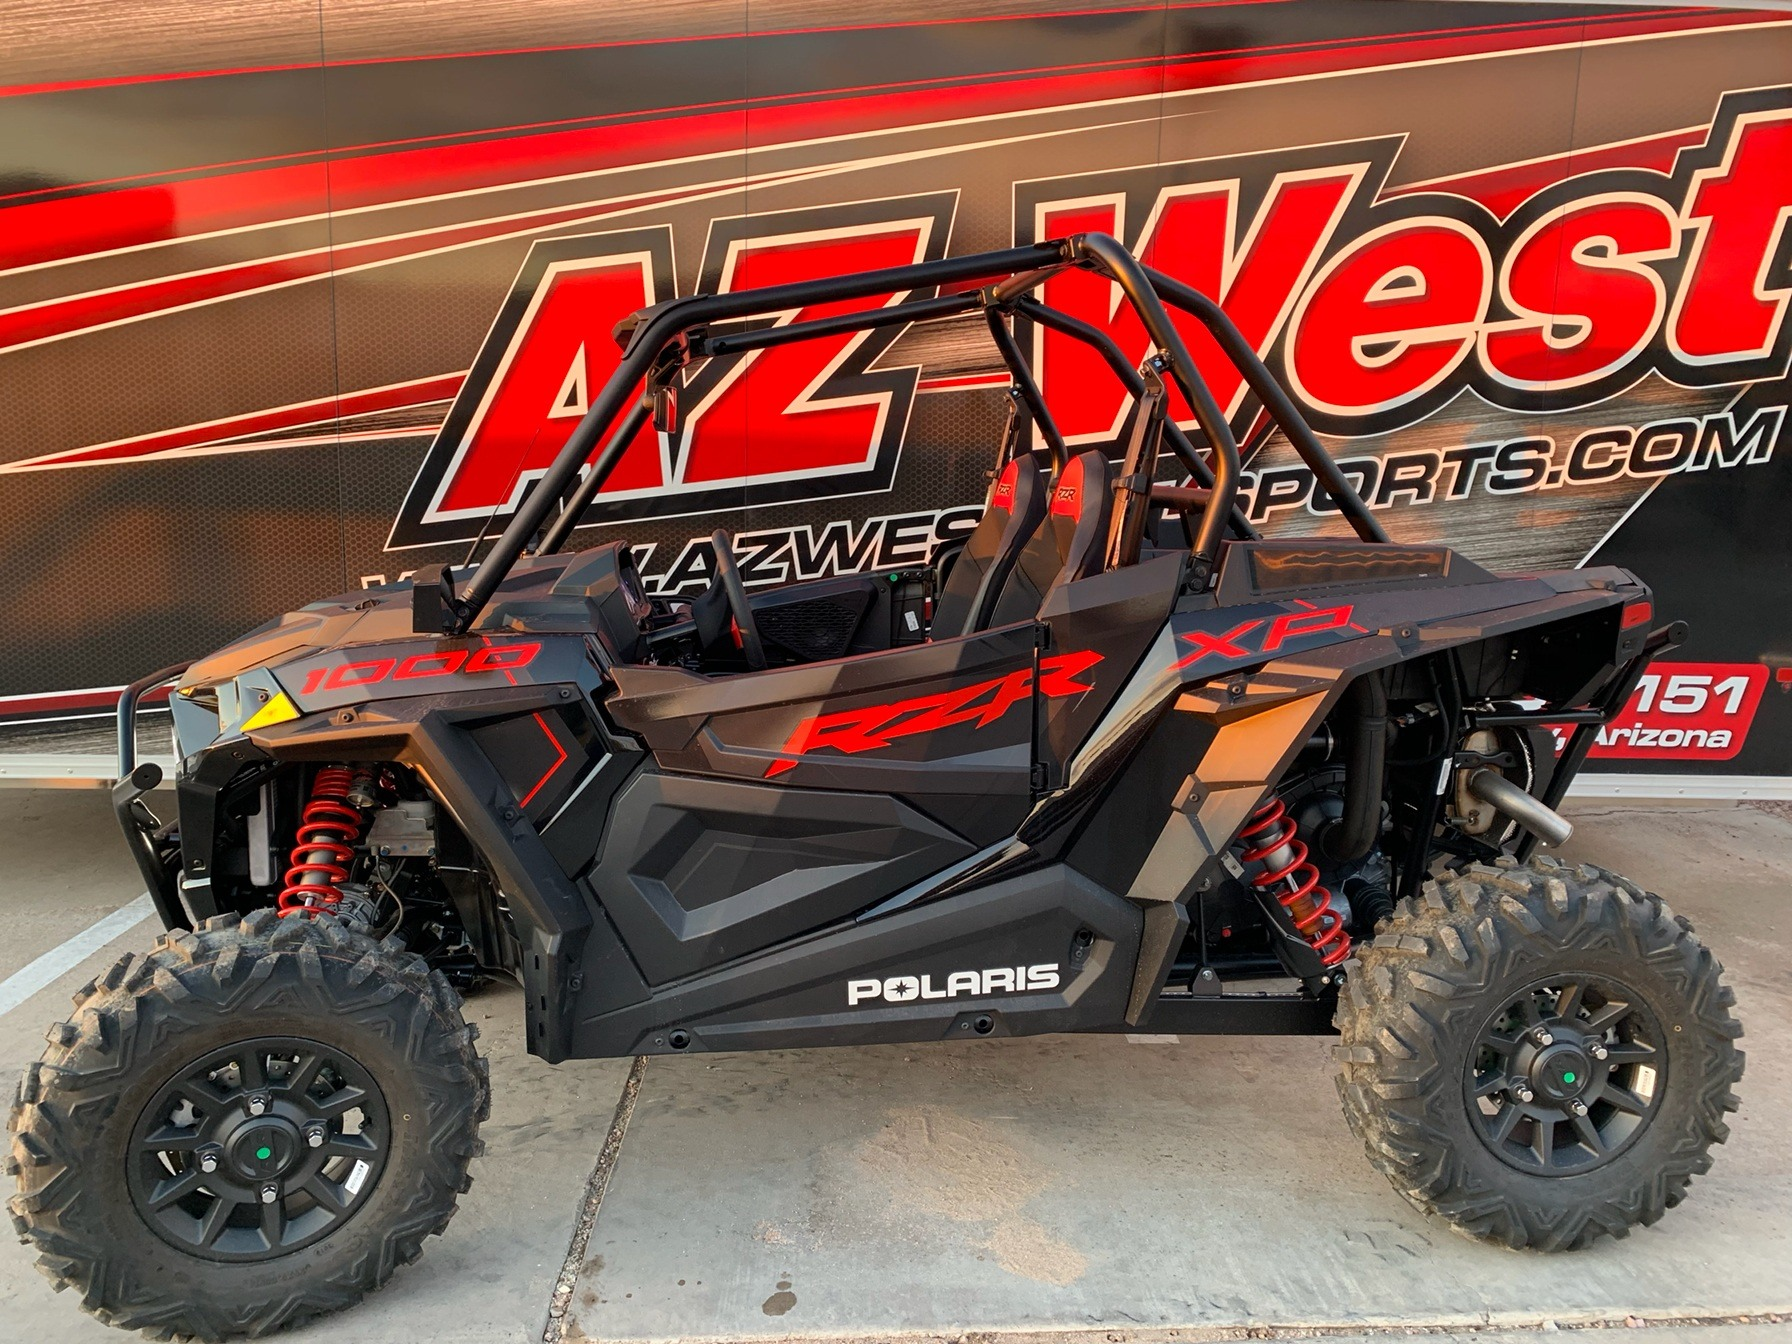 2020 Polaris RZR XP 1000 Premium in Lake Havasu City, Arizona - Photo 1